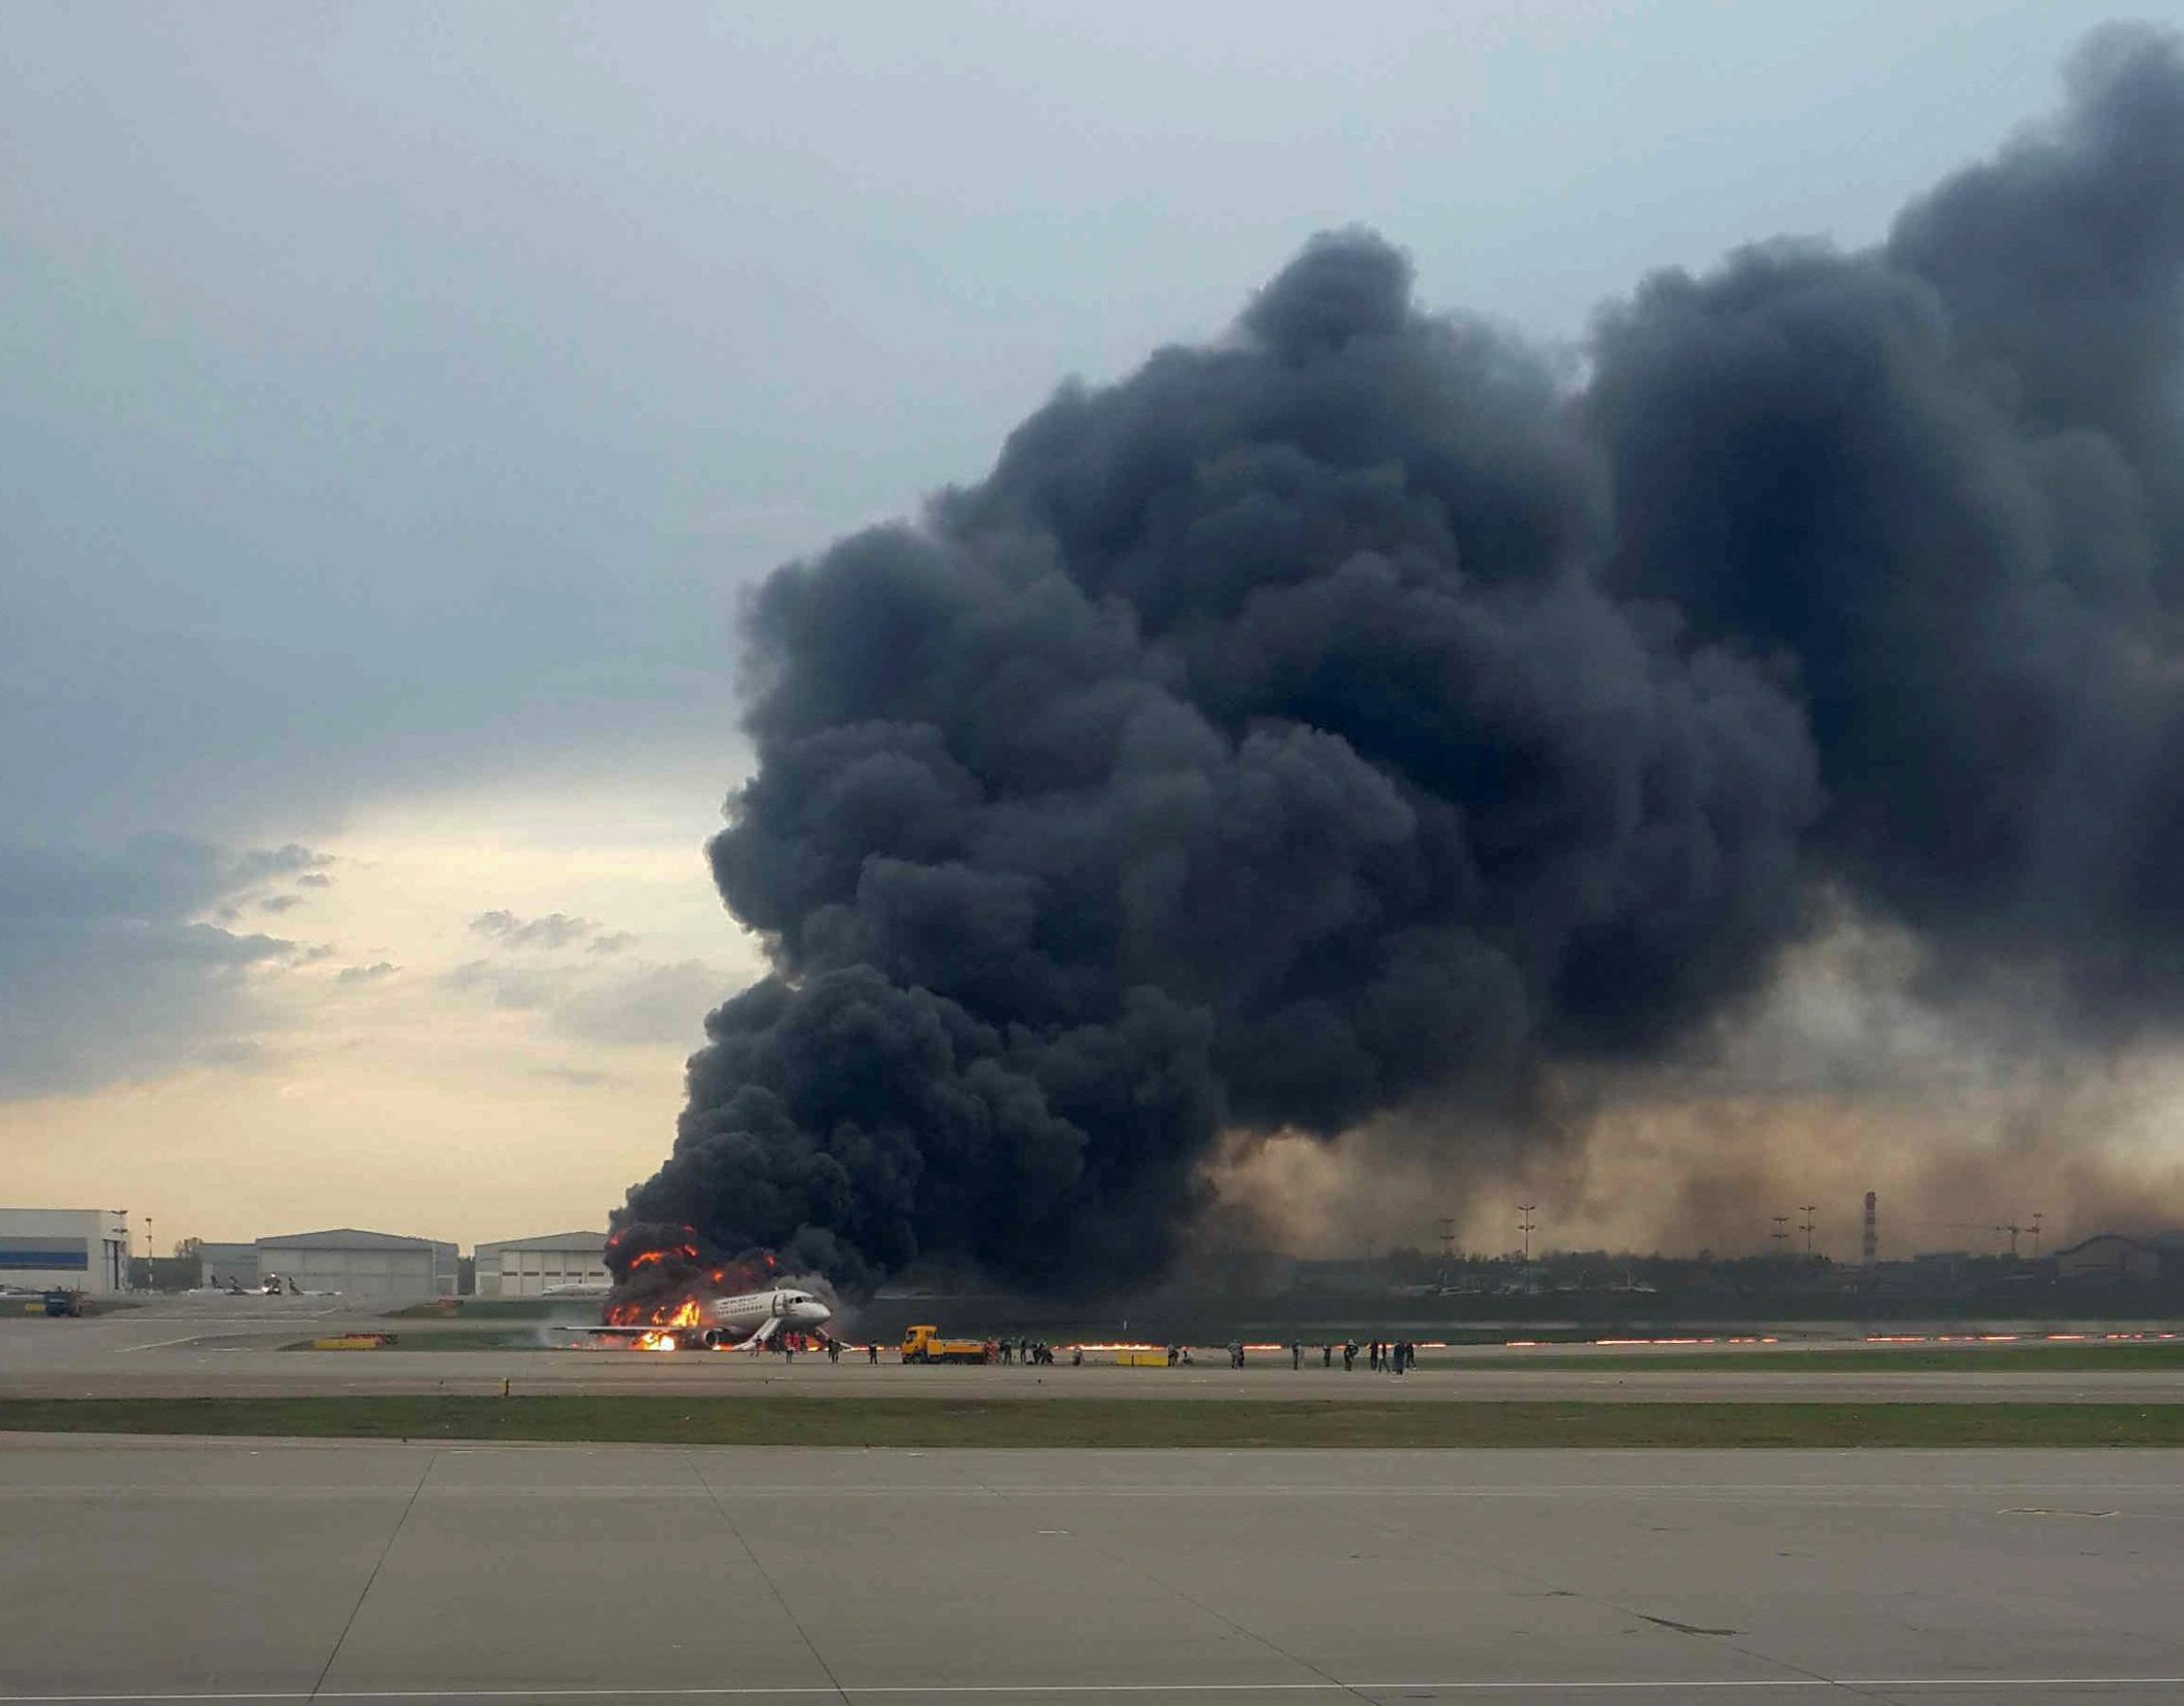 A passenger plane is seen on fire after an emergency landing at the Sheremetyevo Airport outside Moscow, Russia May 5, 2019.  REUTERS/Nadezhda Polomoshnova  NO RESALES. NO ARCHIVES